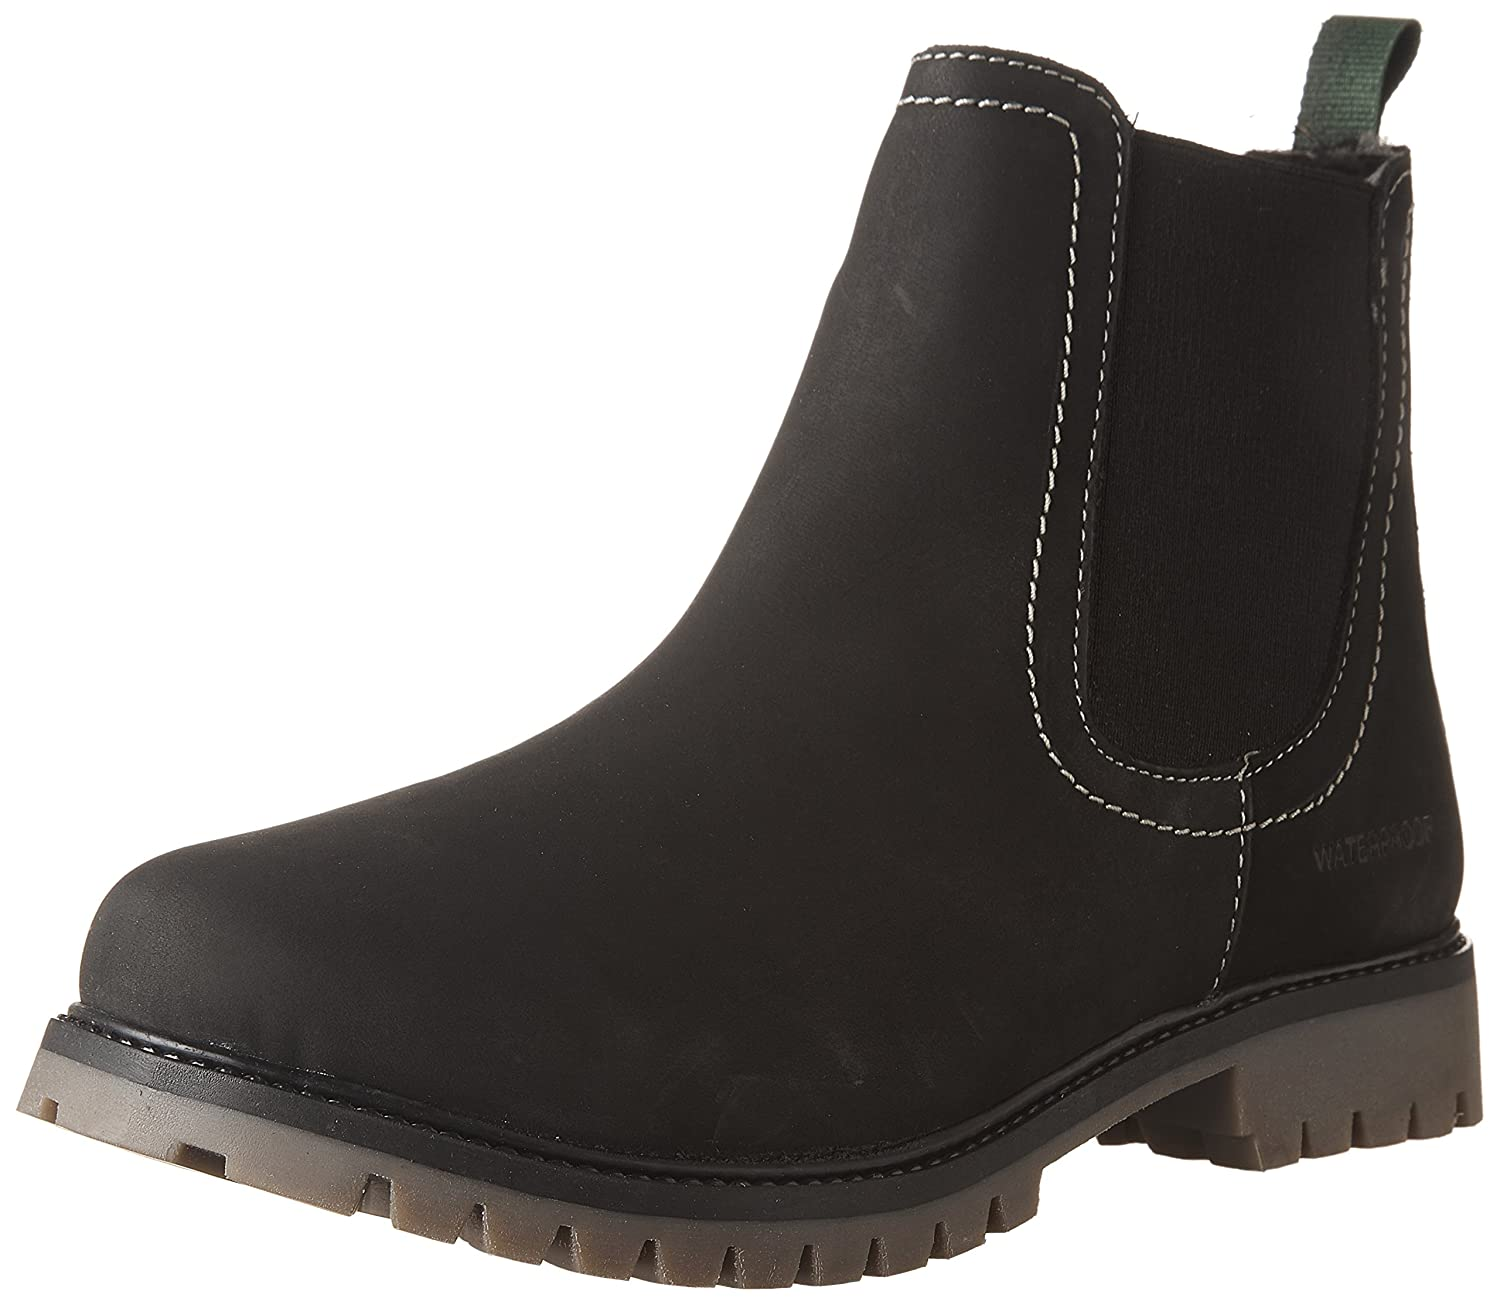 Kamik Kids' Takodac Fashion Boots, Black, 6 M US Big Kid WK4018